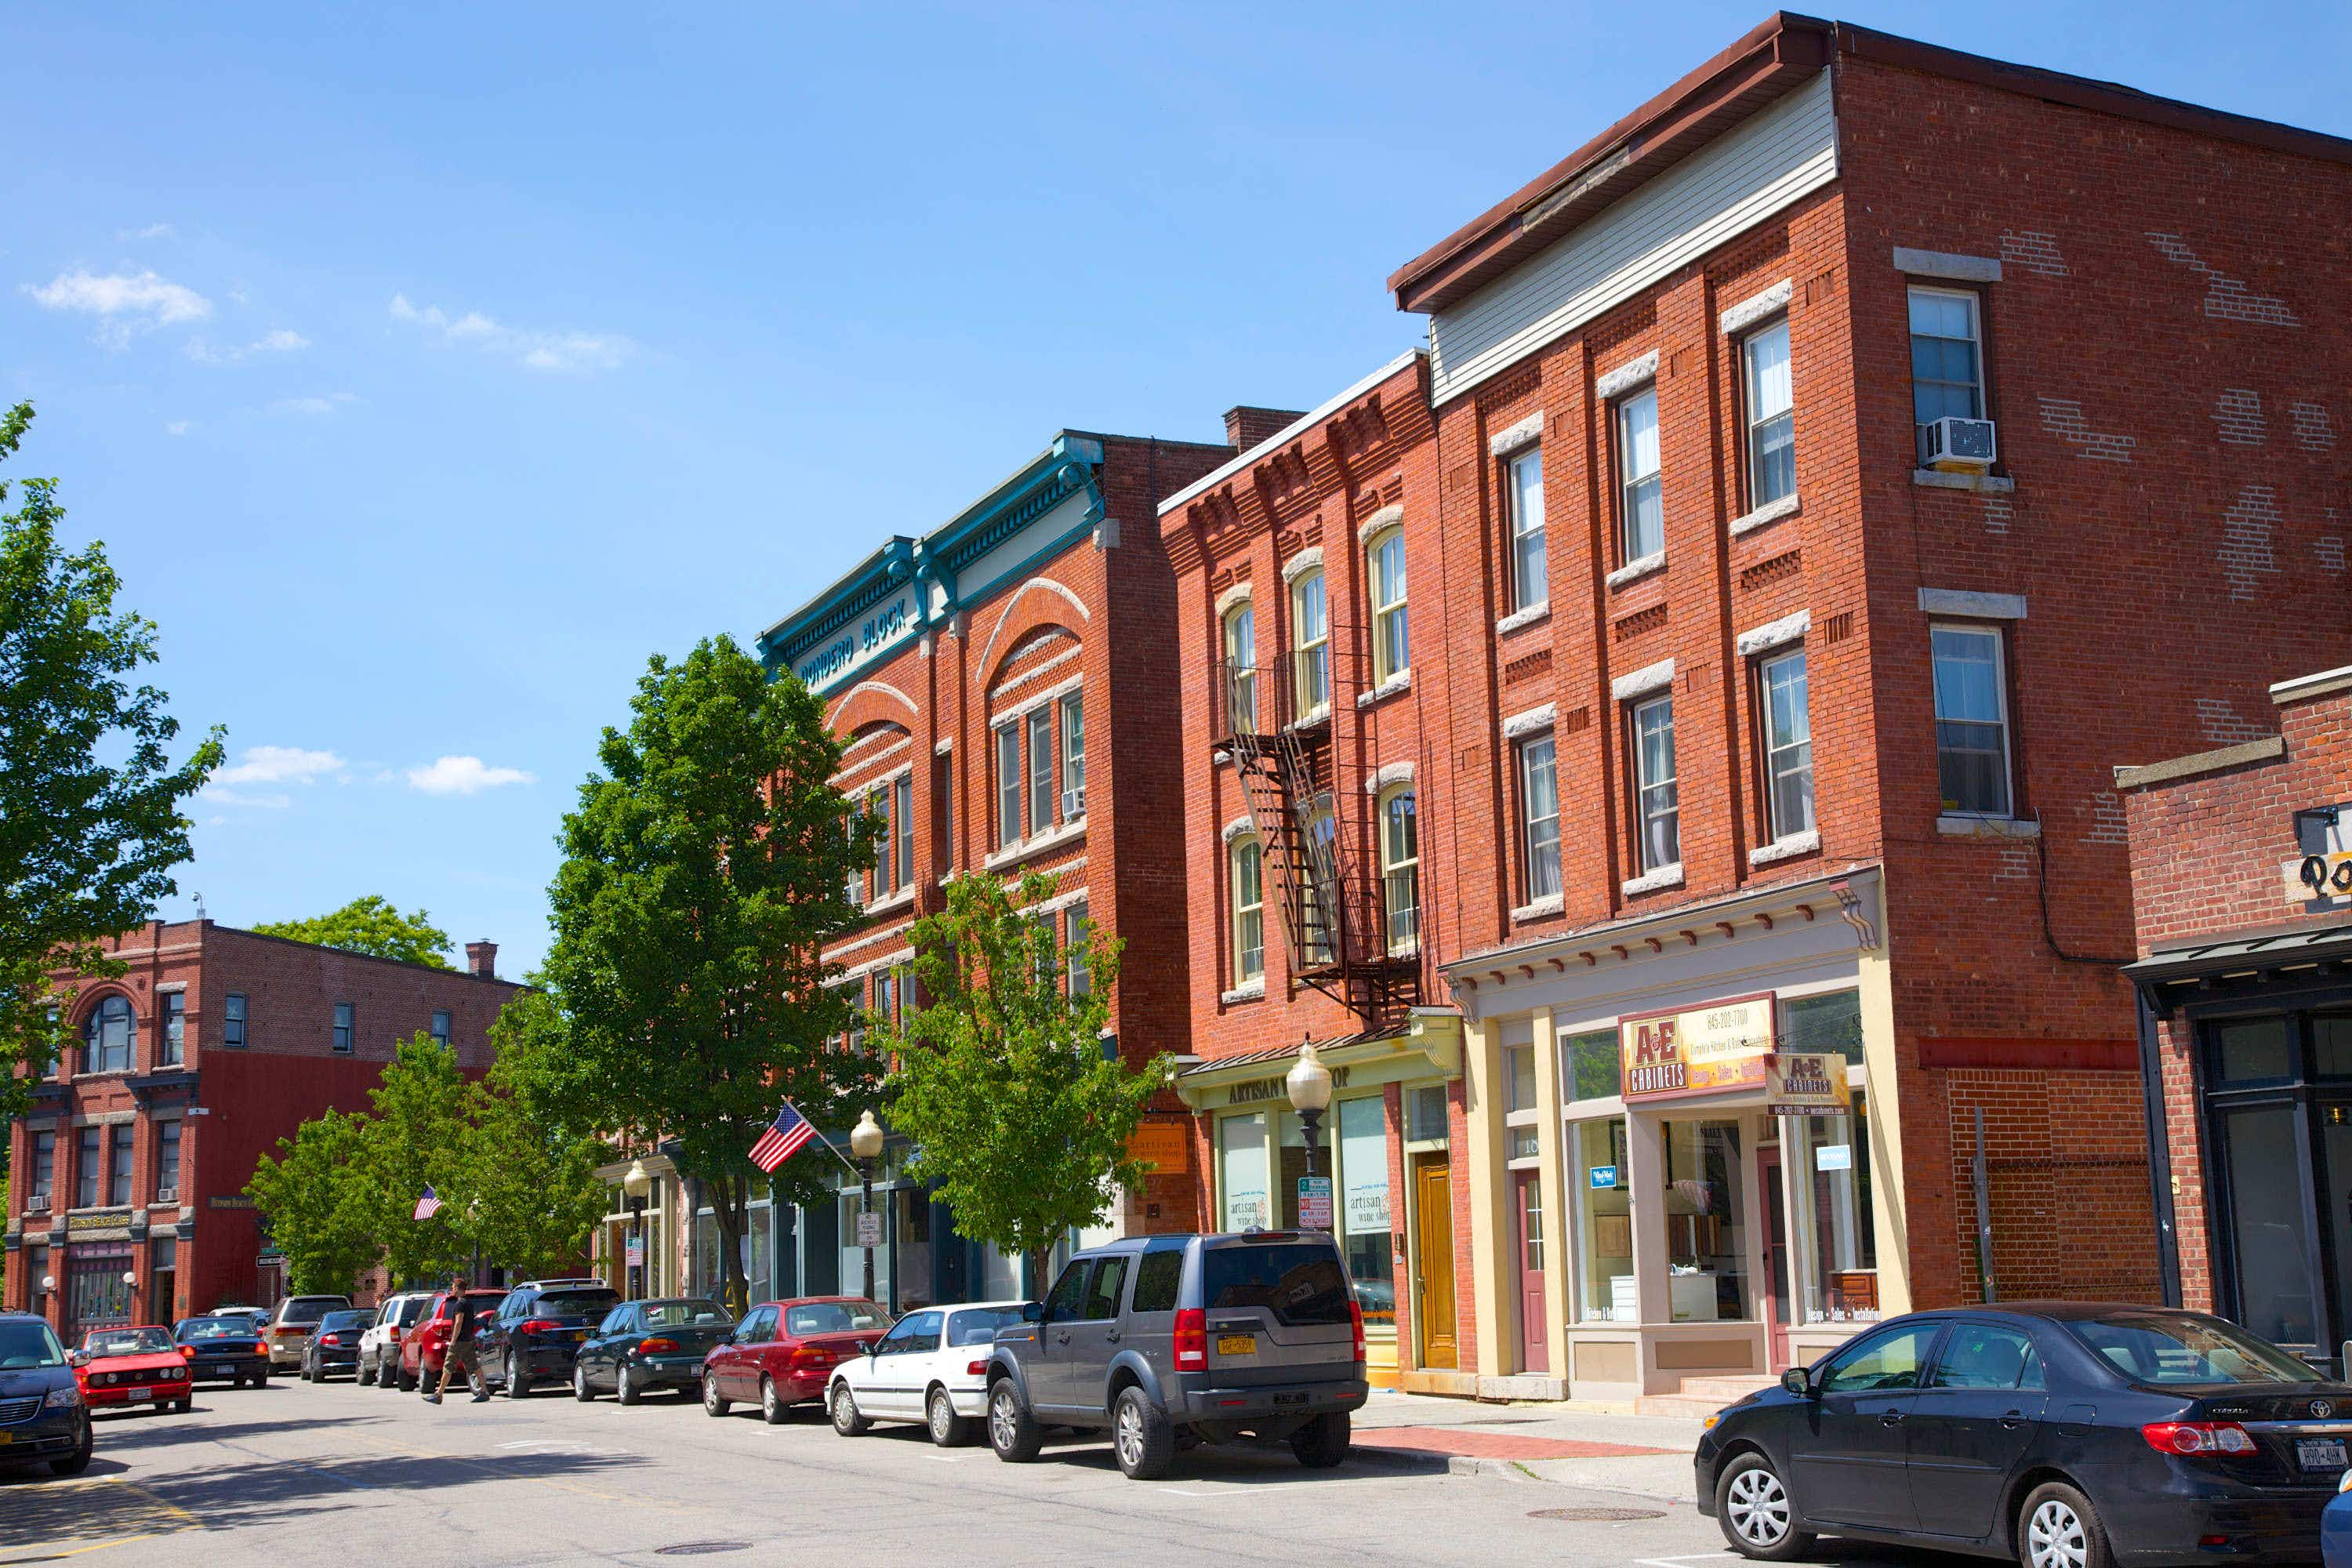 Plan your next trip to one of the coolest small towns in the US